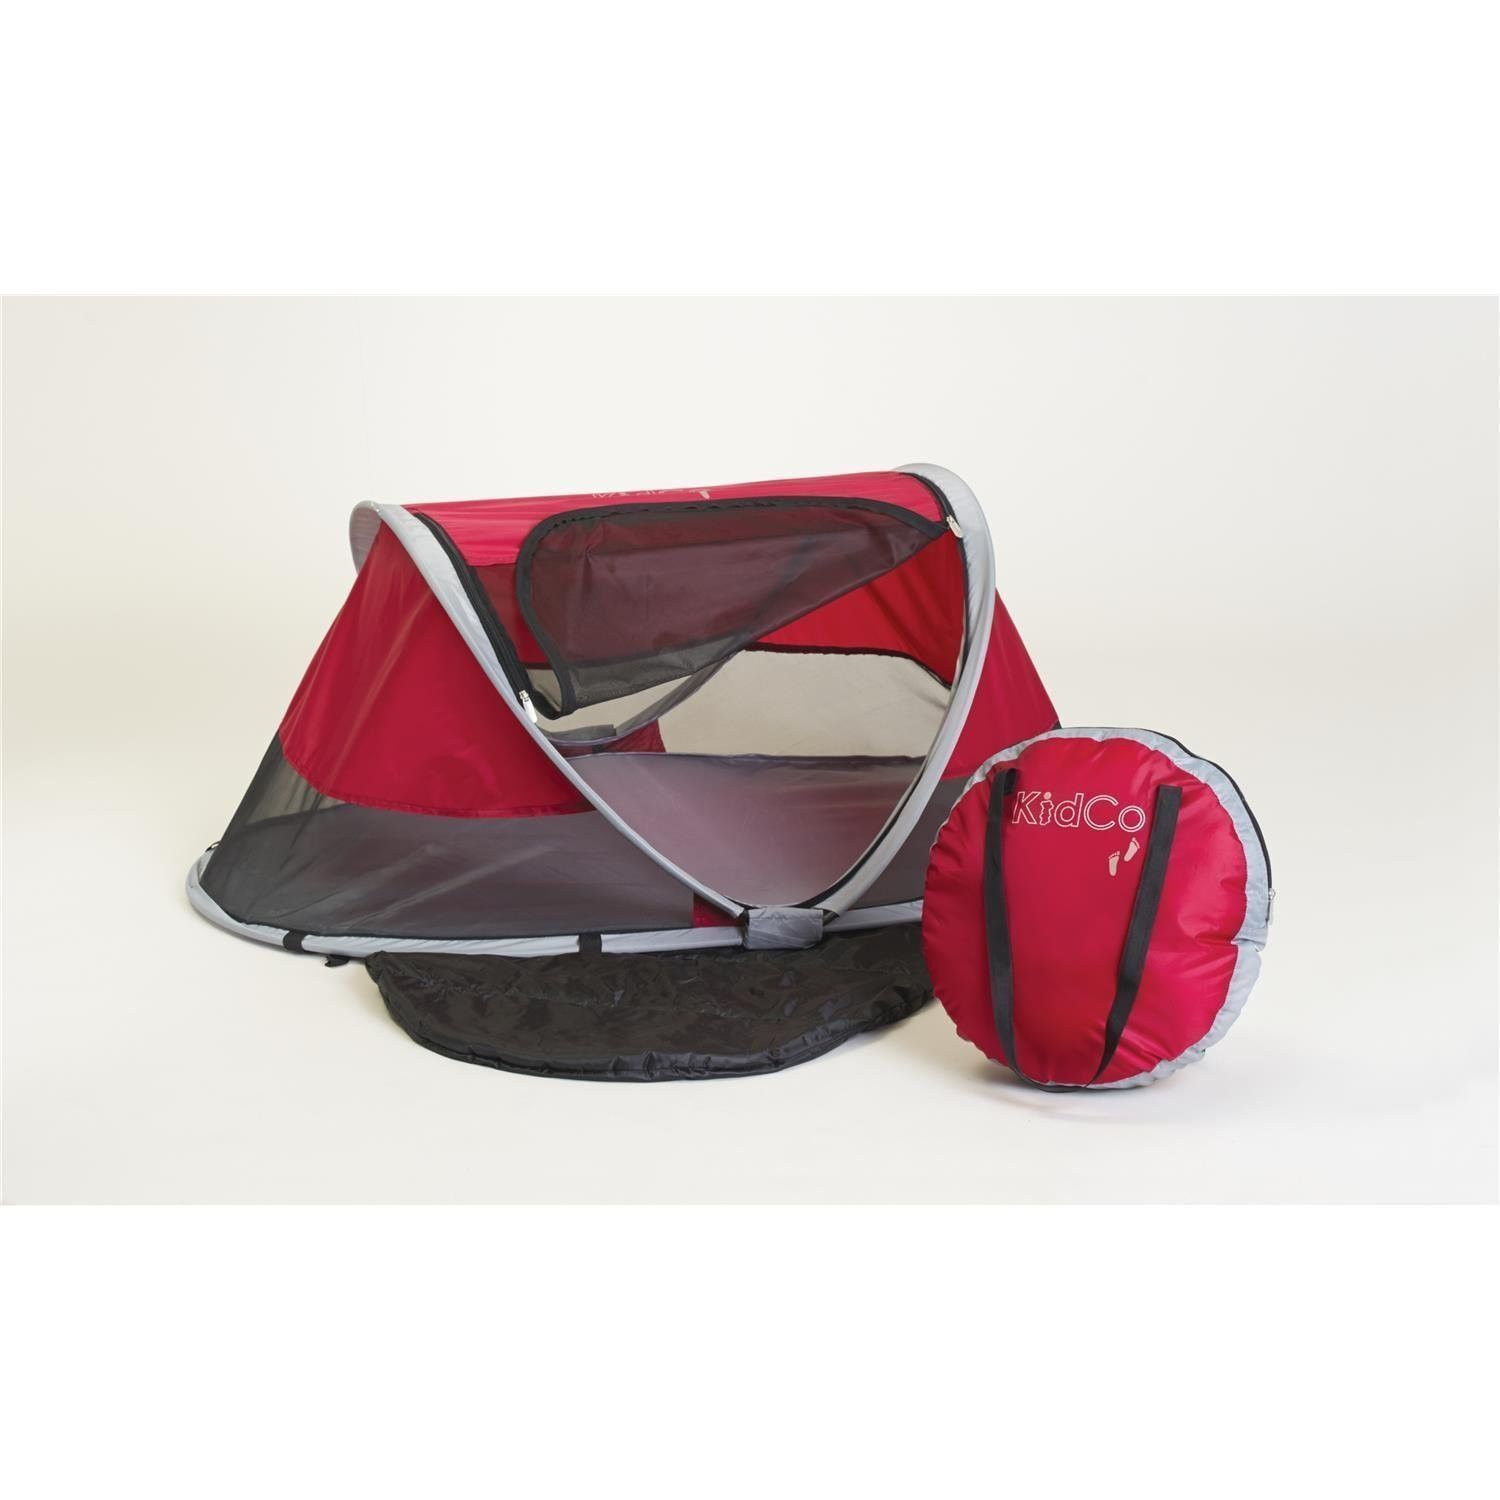 baby portable travel tent bed with uv protection and carry bag